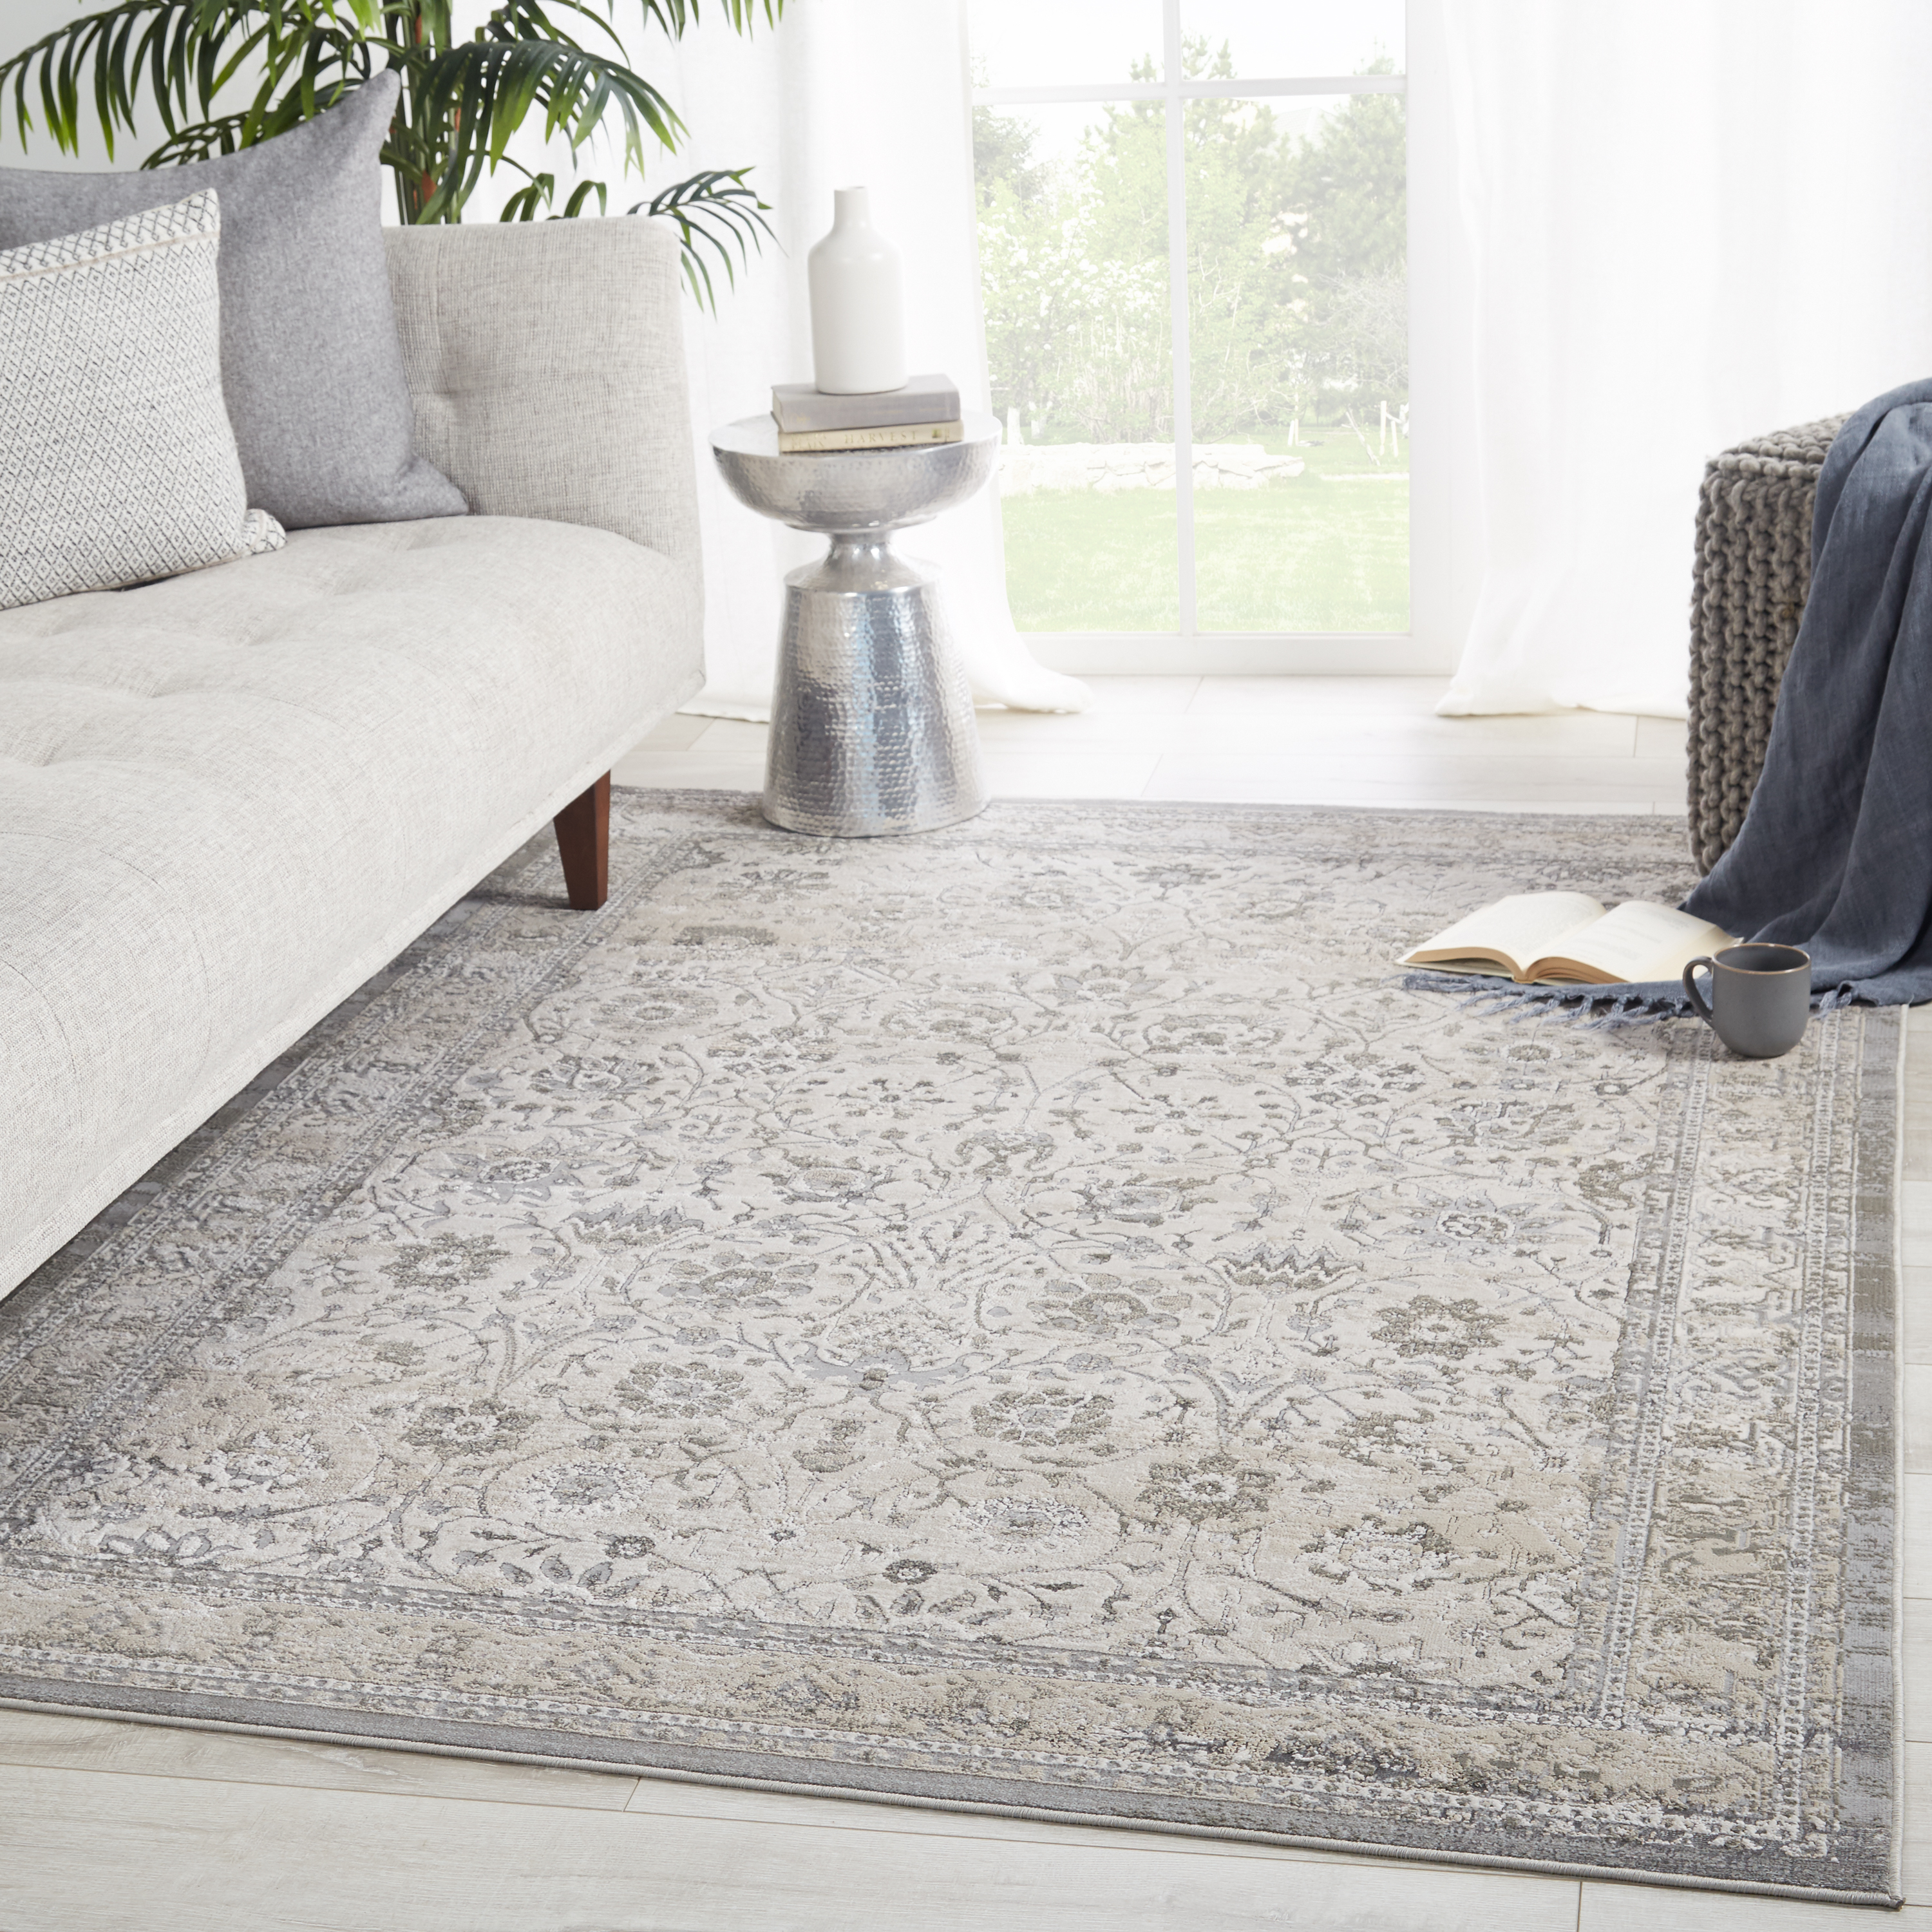 """Vibe by Odel Oriental Gray/ White Area Rug (7'10""""X10'6"""")"""